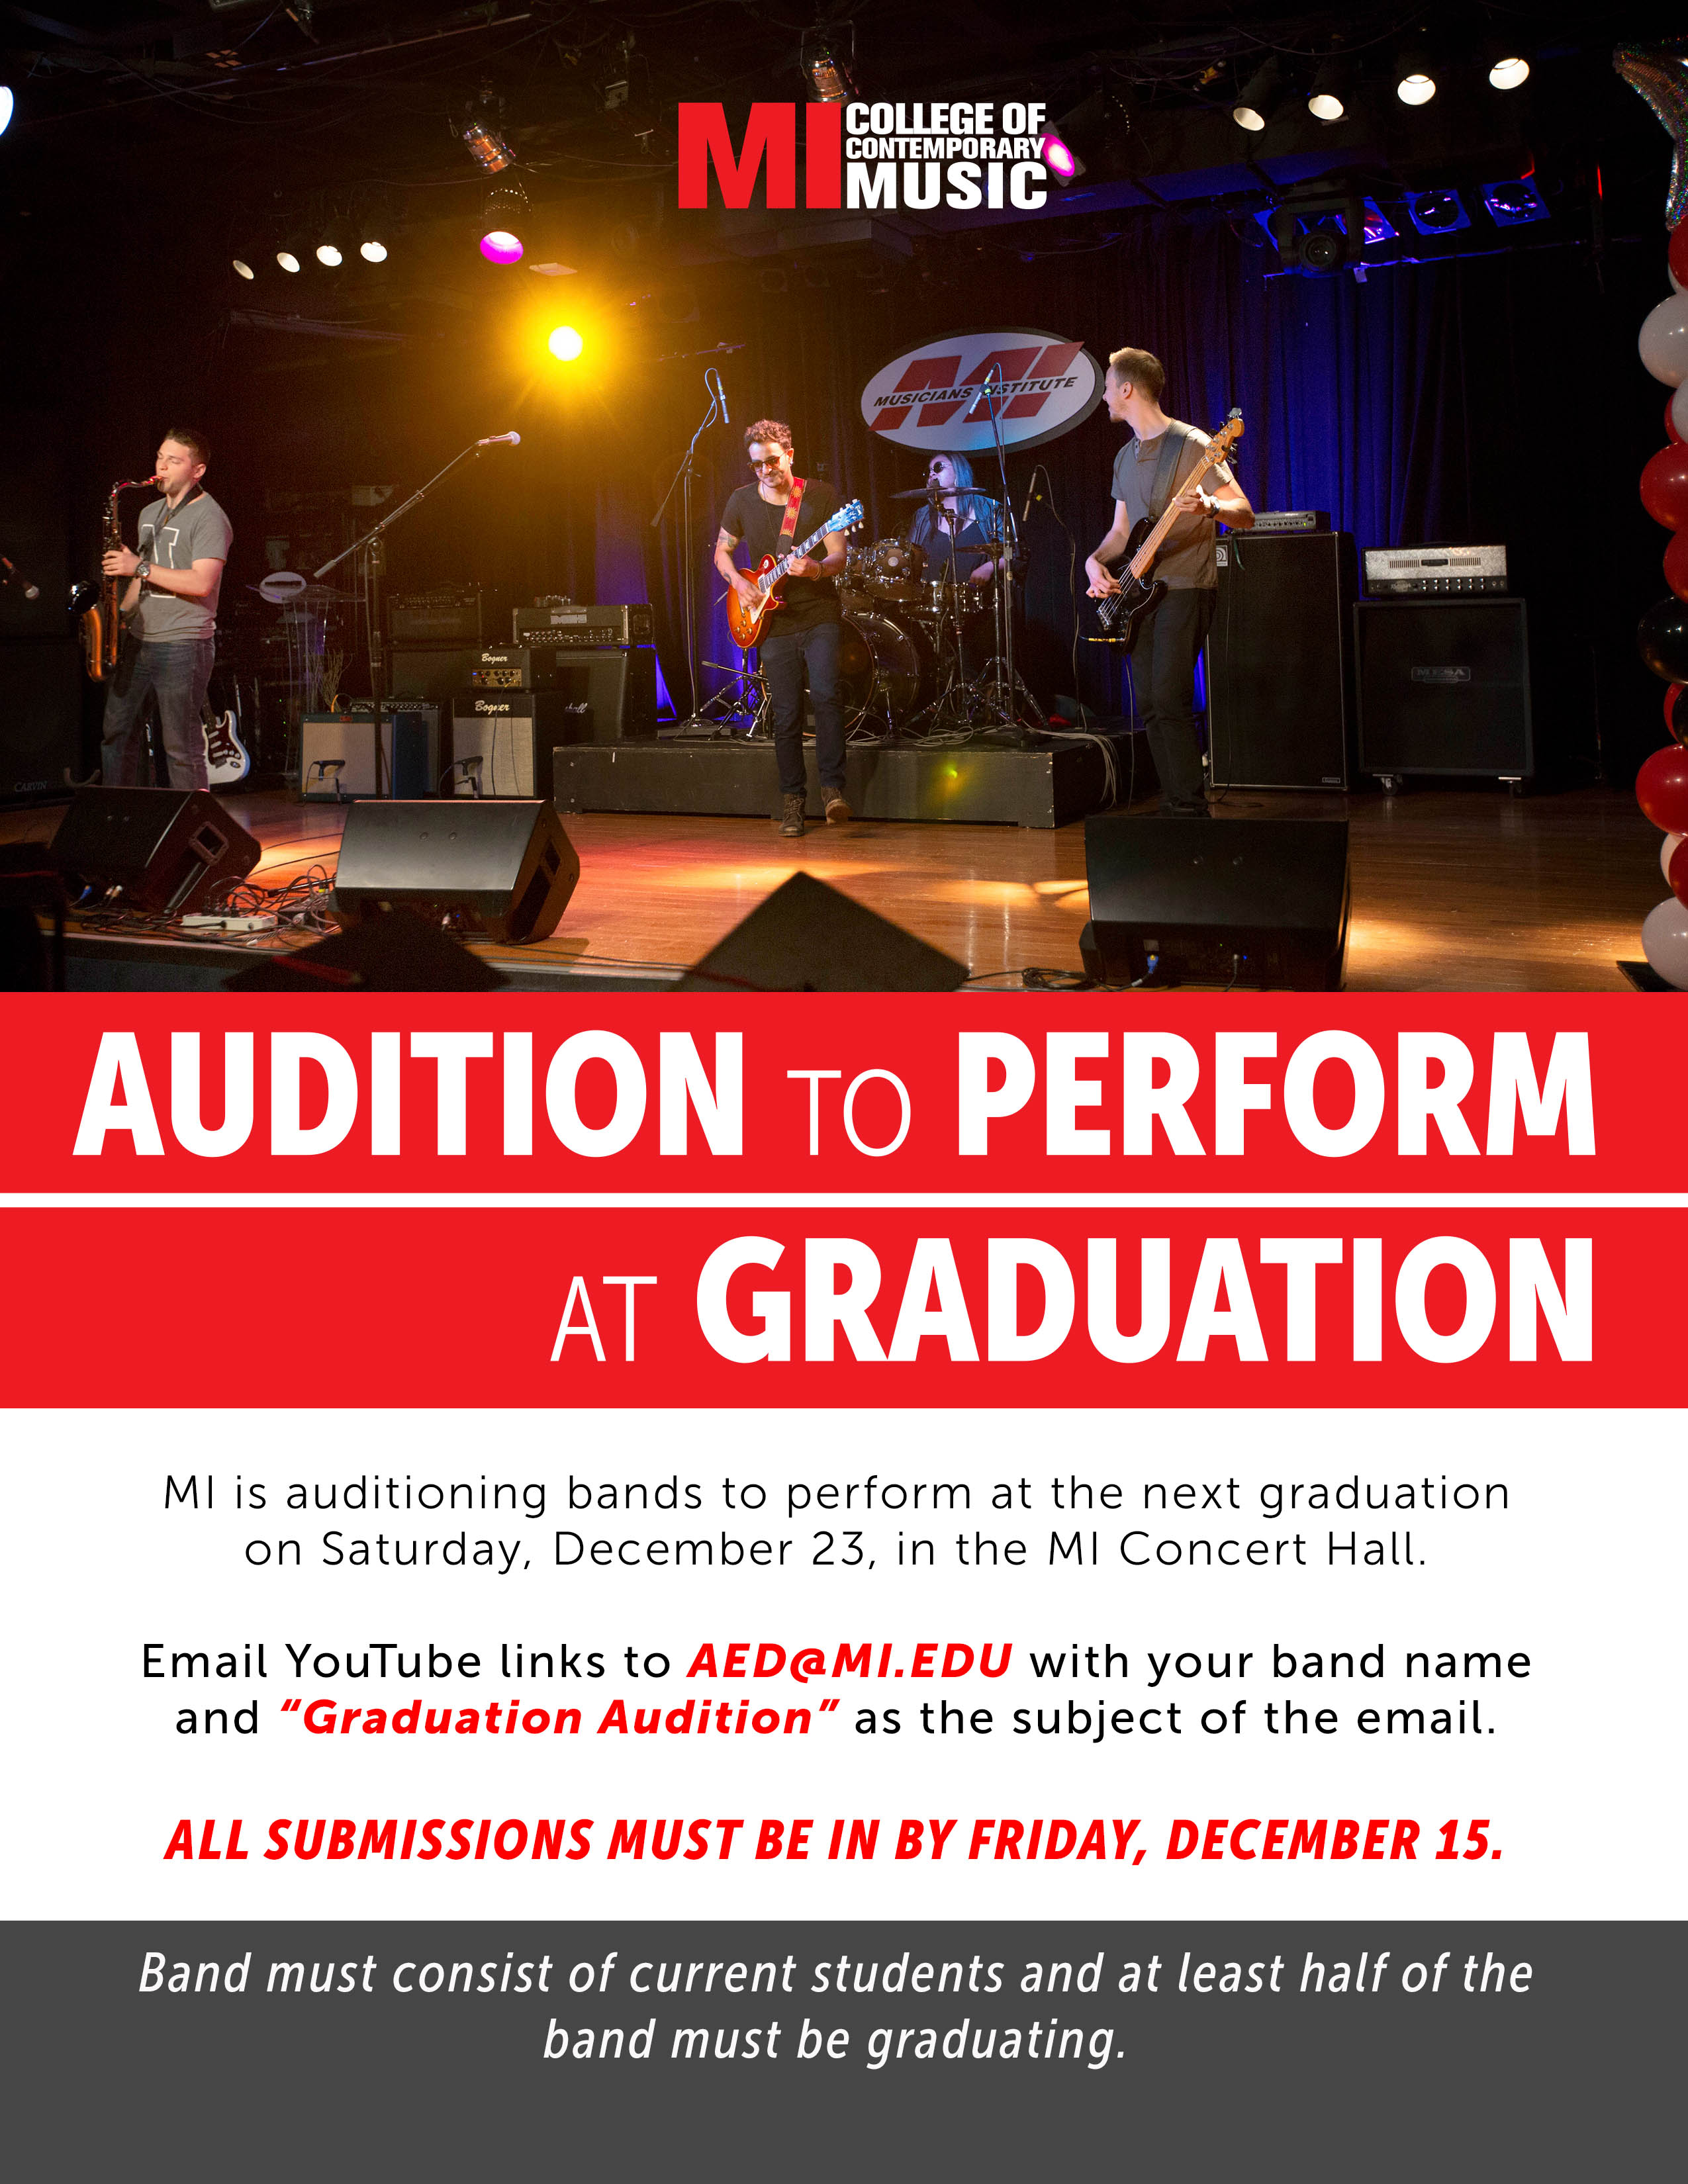 AUDITION TO PERFORM AT GRADUATIONWEDNESDAY, DECEMBER 6, 12PM – FRIDAY, DECEMBER 15, 2017, 11:55PM